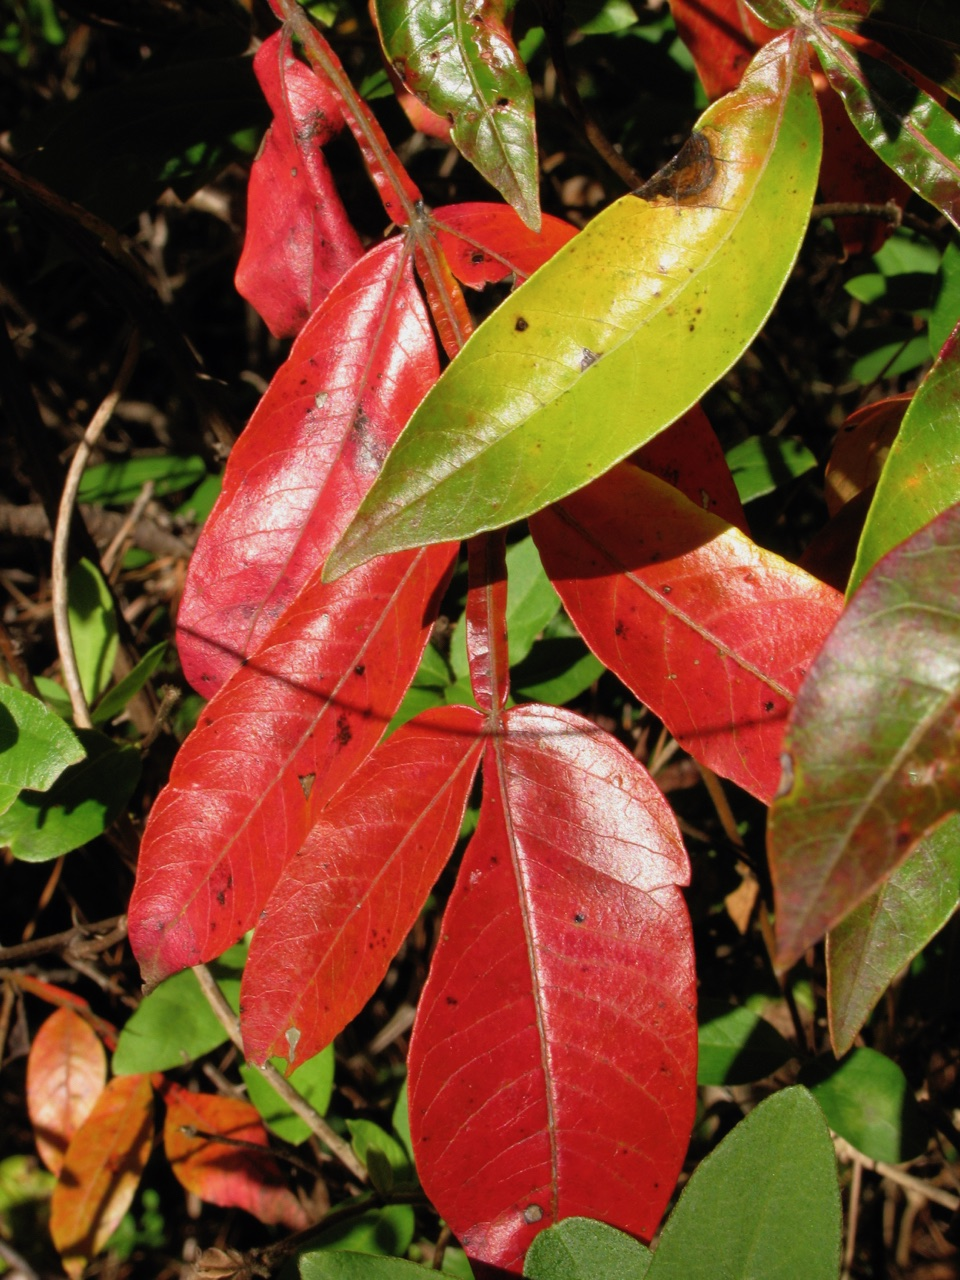 The Scientific Name is Rhus copallinum [= Rhus copallina]. You will likely hear them called Winged Sumac, Shining Sumac, Flameleaf Sumac, Dwarf Sumac. This picture shows the Leaves are very shiny, unlike any other sumac of Rhus copallinum [= Rhus copallina]